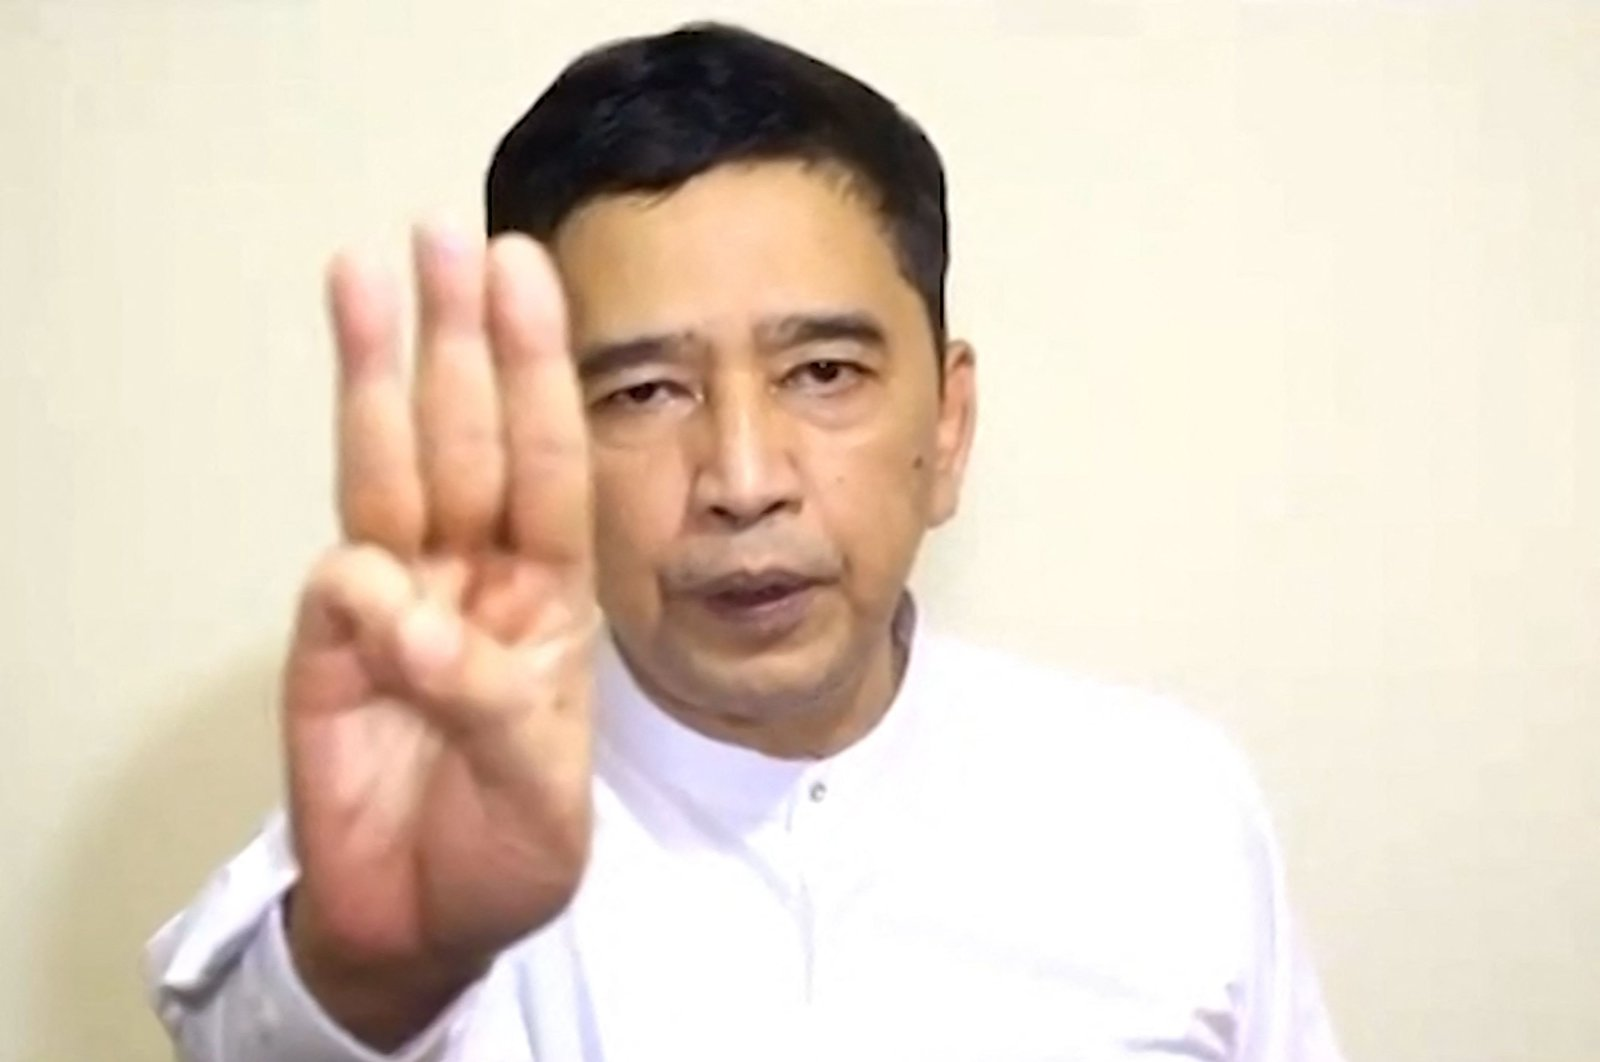 This screengrab from a video shows Min Ko Naing, prominent pro-democracy leader in an undisclosed location holding up the three finger salute as he announces the formation of a National Unity Government, April 16, 2021. (Committee for Representing Pyidaungsu Hluttaw - CRPH via  AFP)